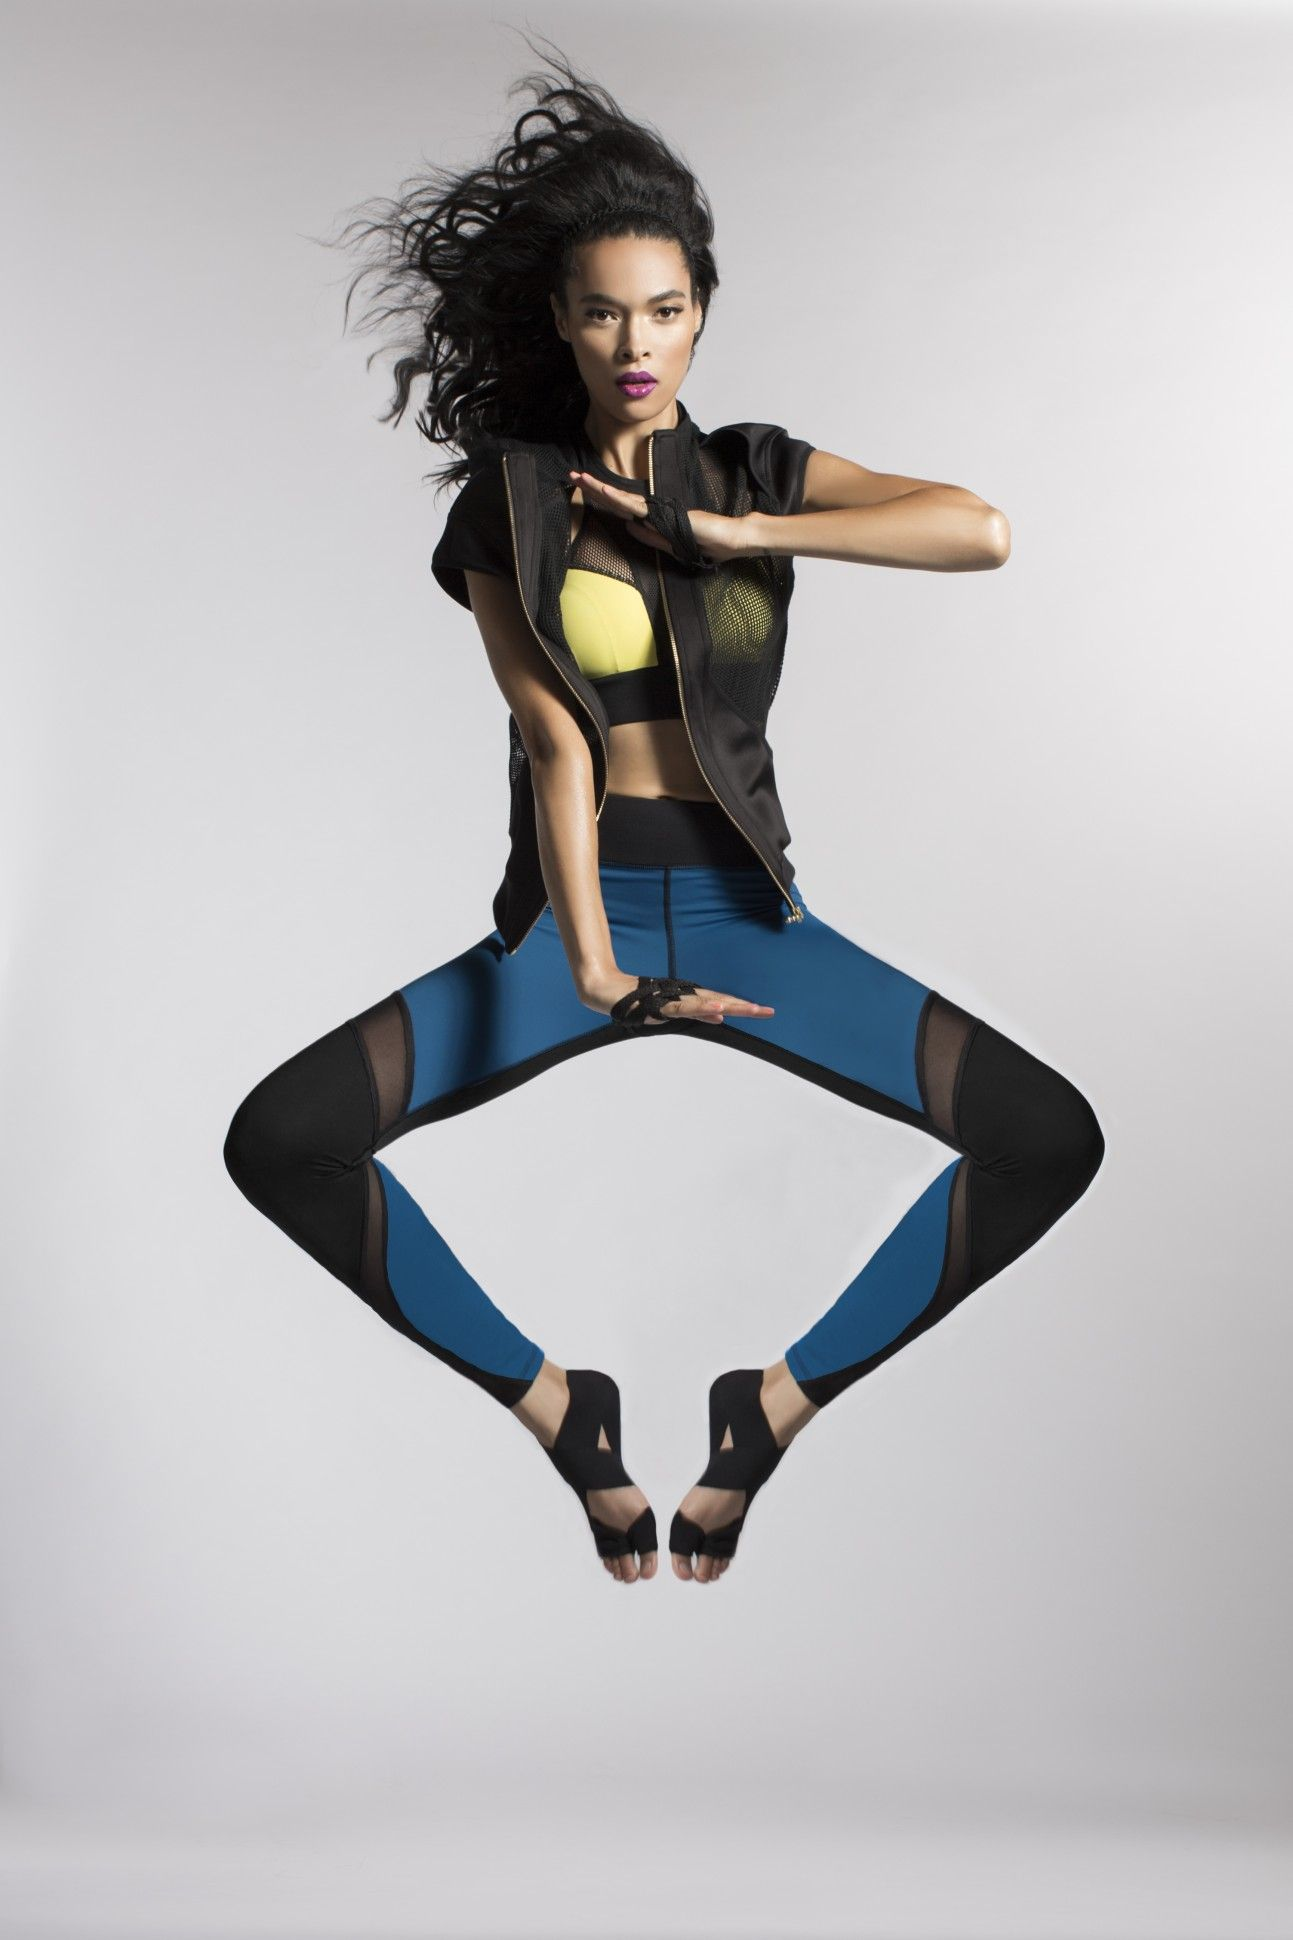 e9eeec7e29cb3 The Latest Luxury Activewear To Compete With Lululemon | Workout ...